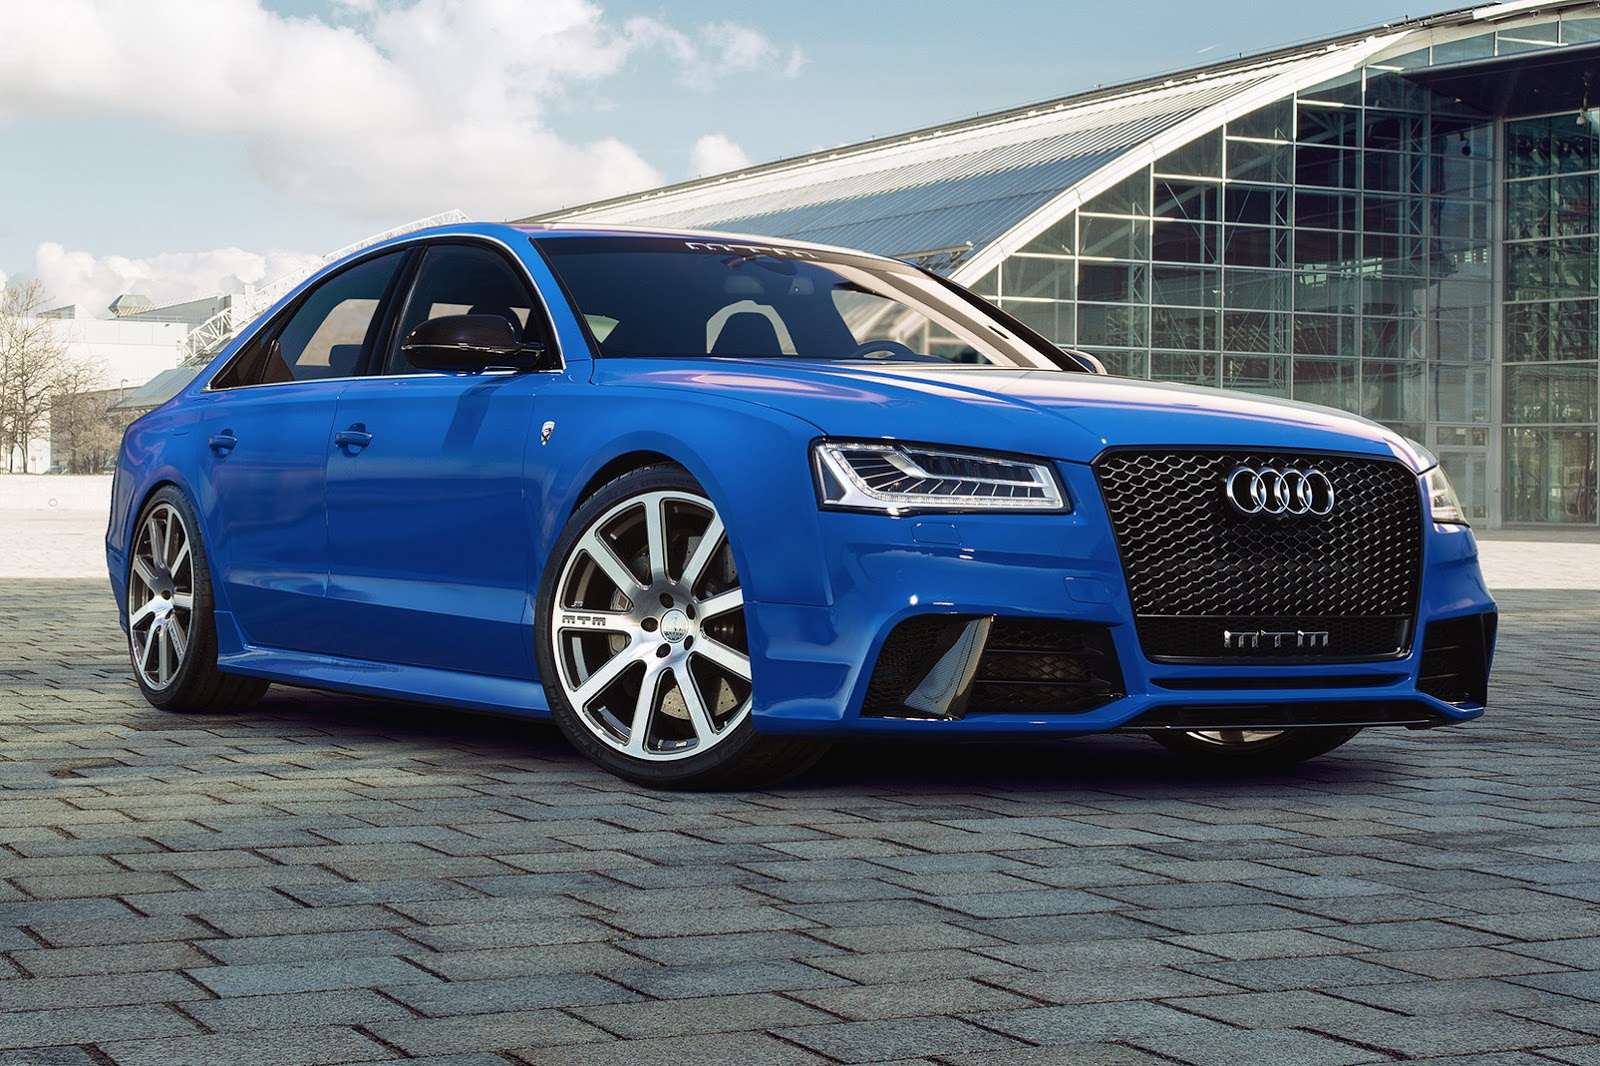 Audi A4 Wheels >> MTM's New Audi S8 Talladega S Promises To Blow Your Mind With 802PS   Carscoops